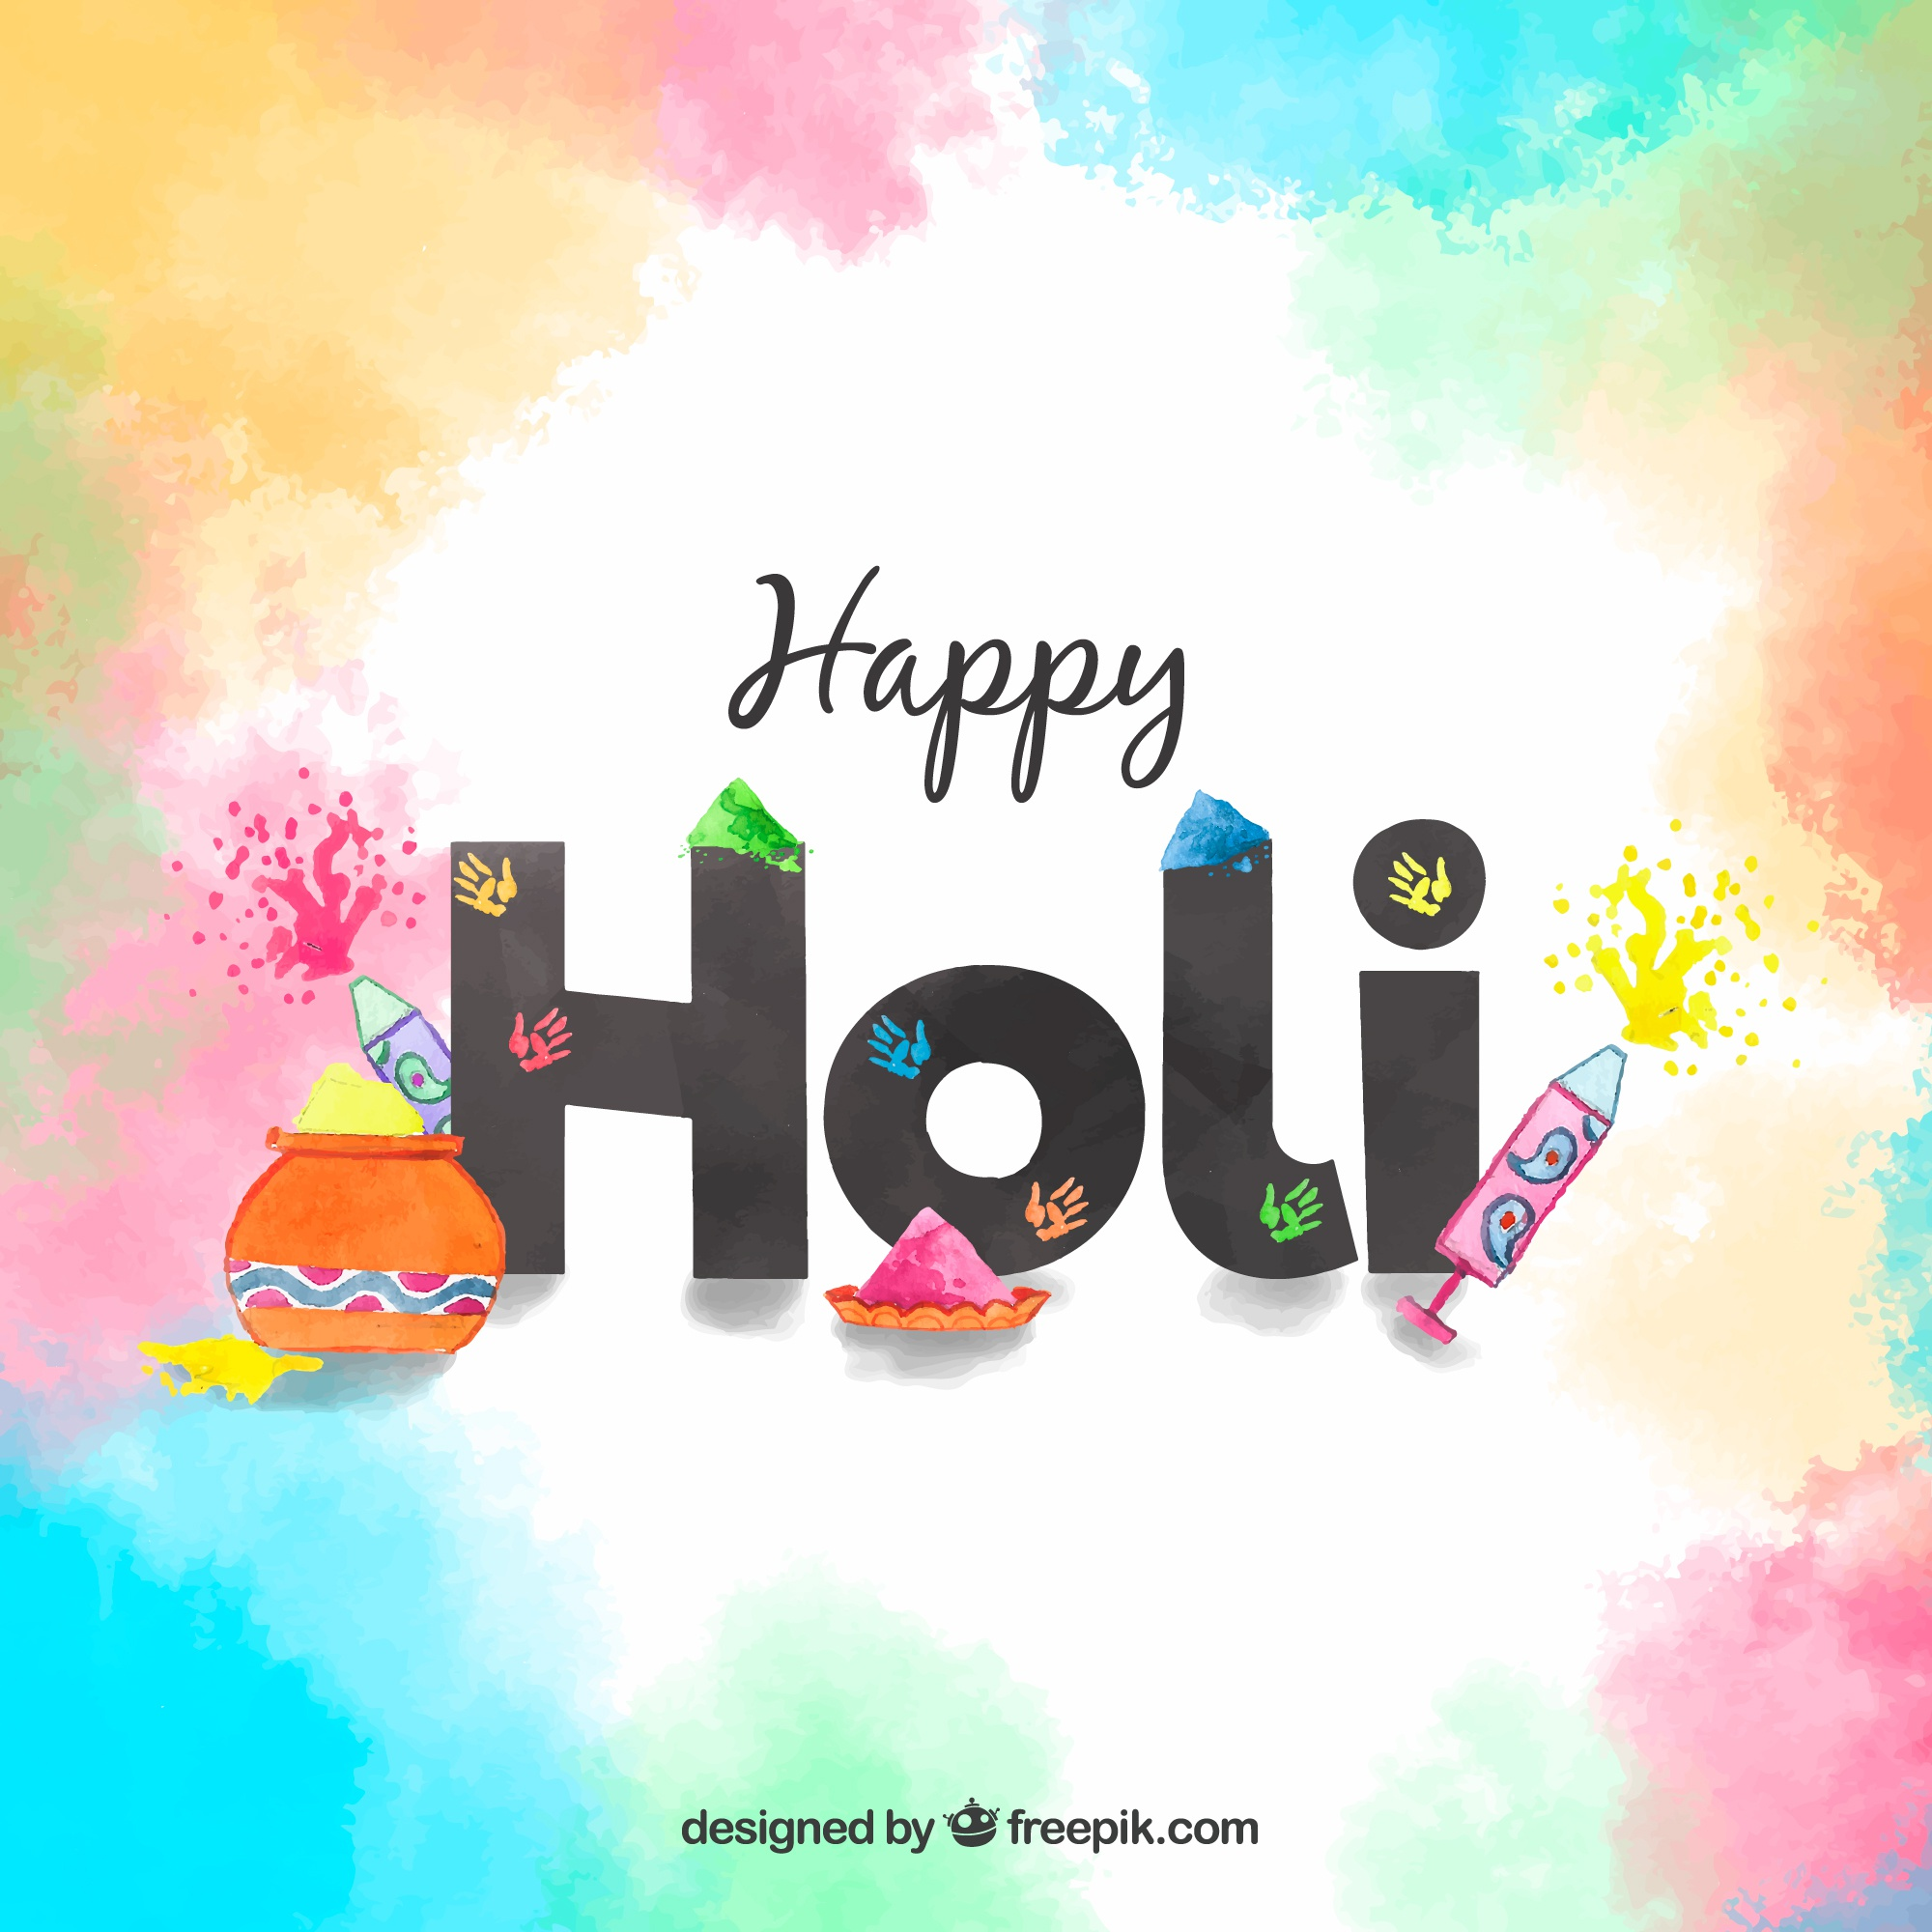 Happy holi background with lettering